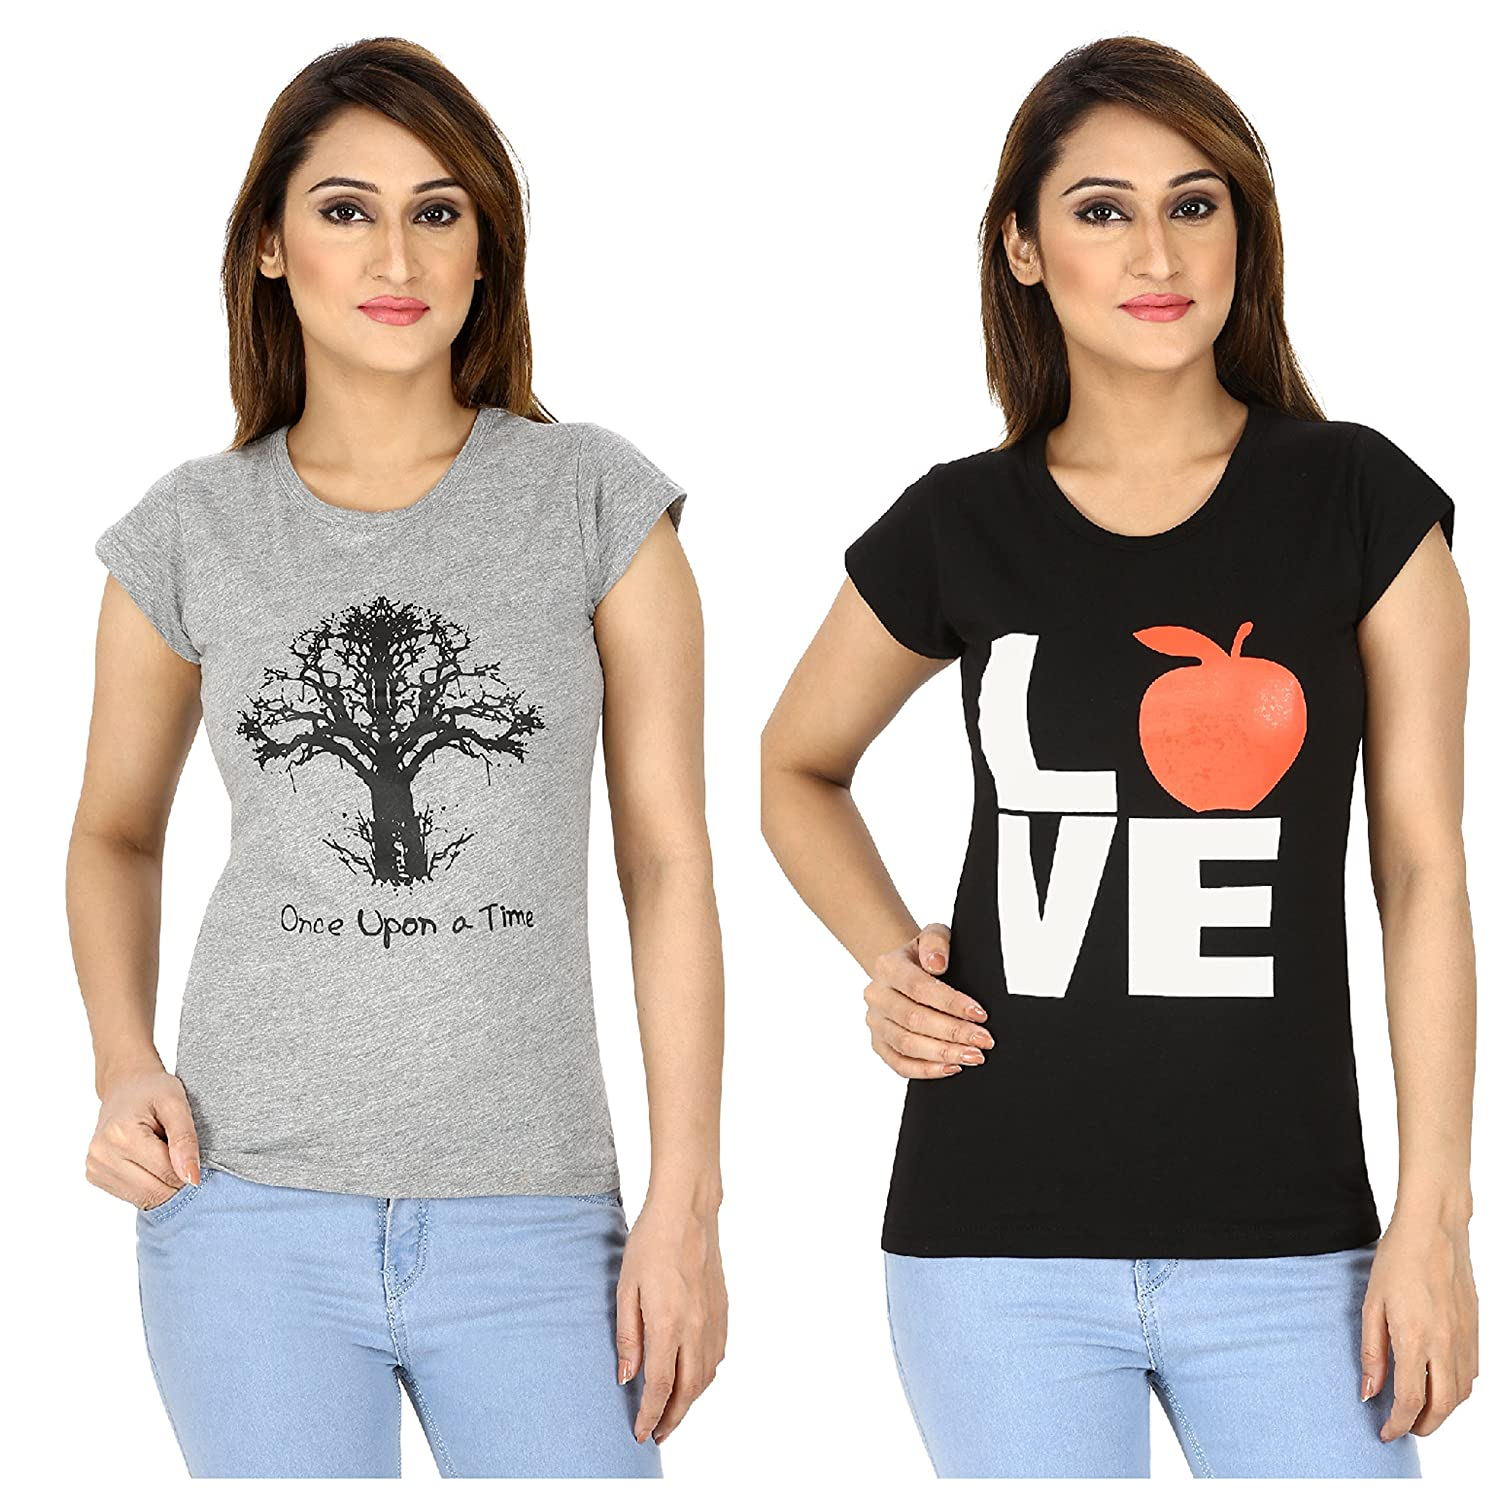 a777b3cd596f Harry & Sally Women's Cotton T-Shirt (XXL, Grey): Amazon.in: Clothing &  Accessories